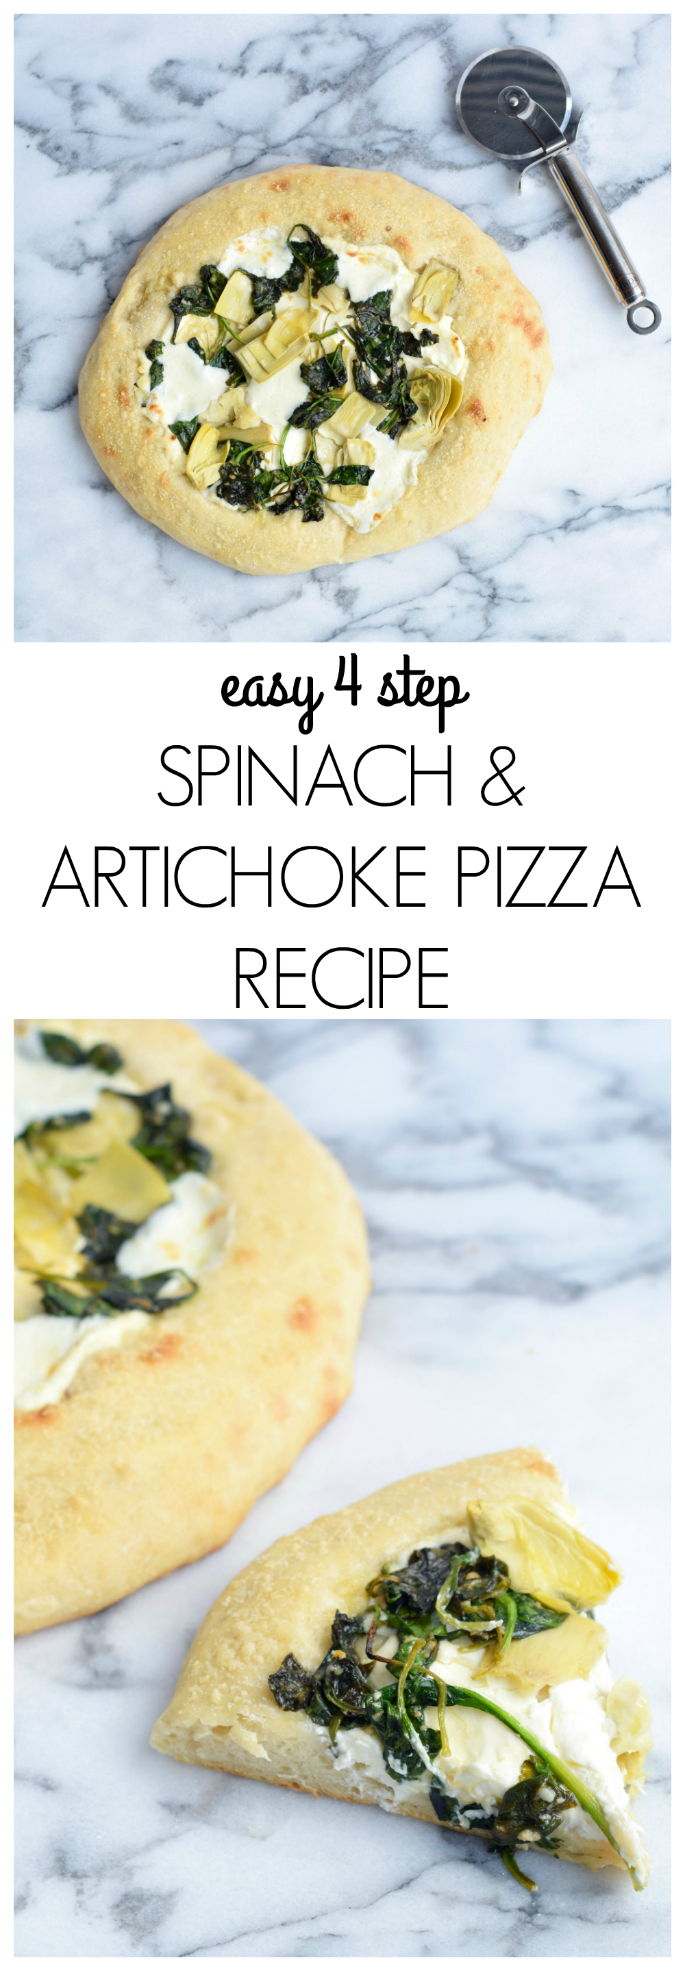 EASY 4 STEP SPINACH & ARTICHOKE PIZZA RECIPE